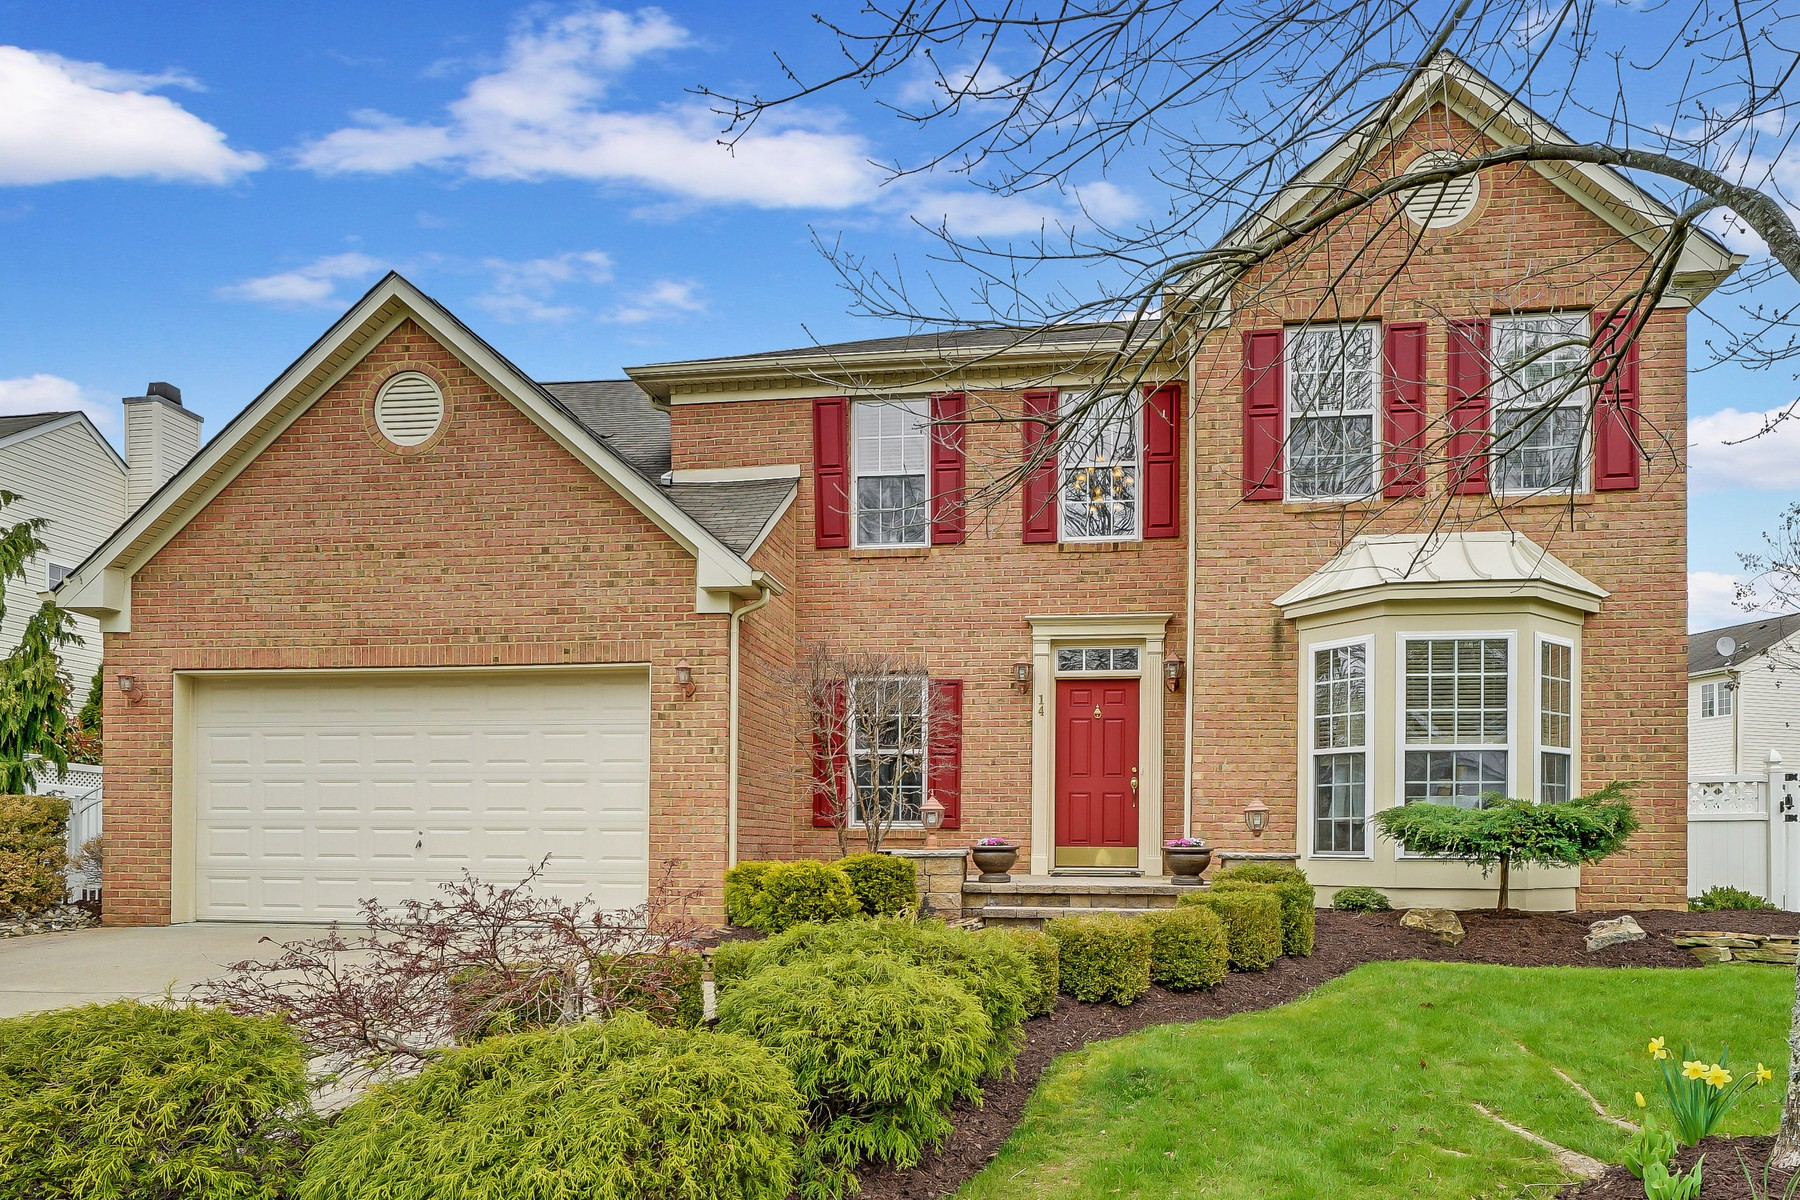 Single Family Home for Sale at Luxurious Living in Howell 14 Firestone Dr, Howell, New Jersey 07731 United States